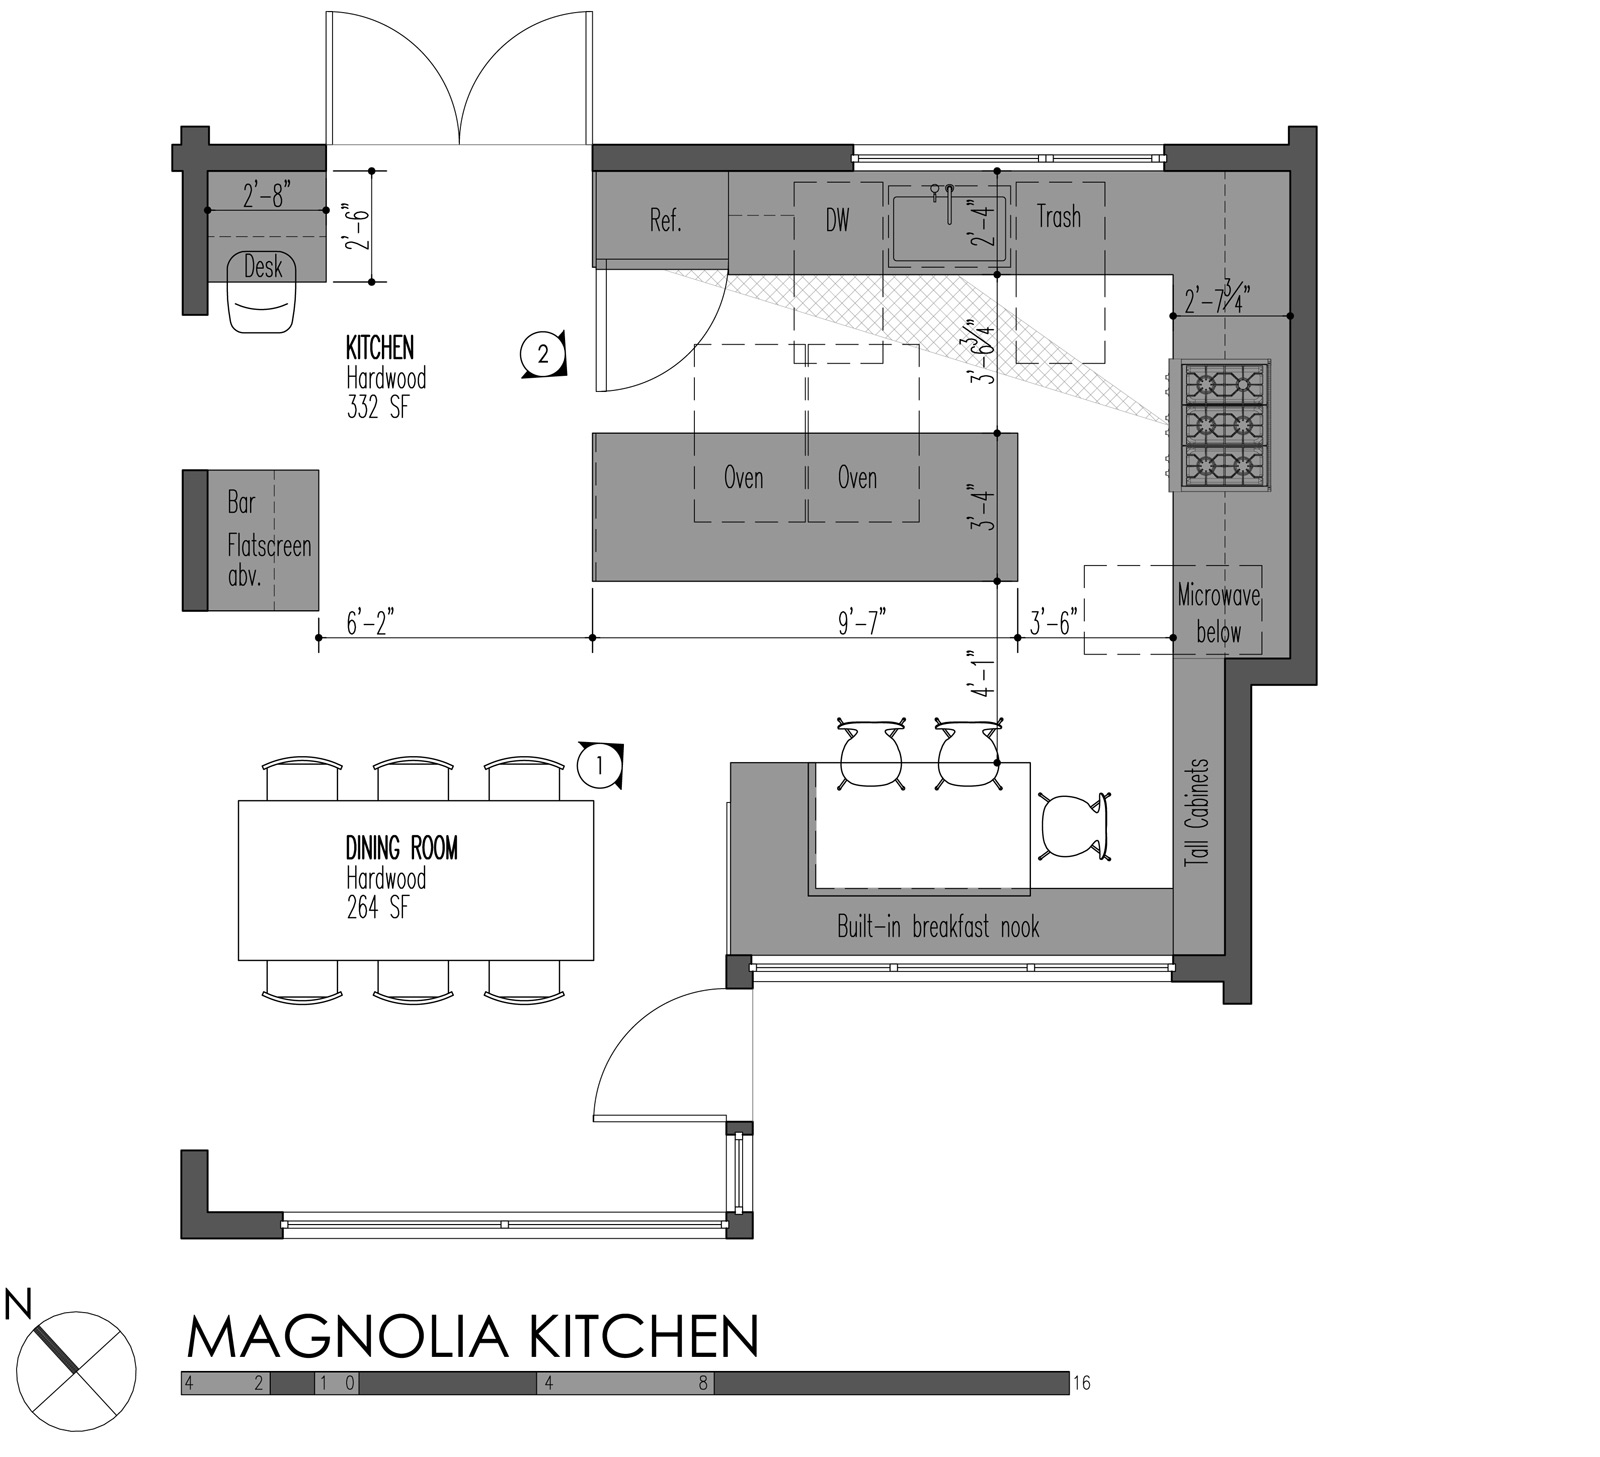 Modern Kitchen Plans latest kitchen plans and dimensions Build Llc Magnolia Kitchen Plan